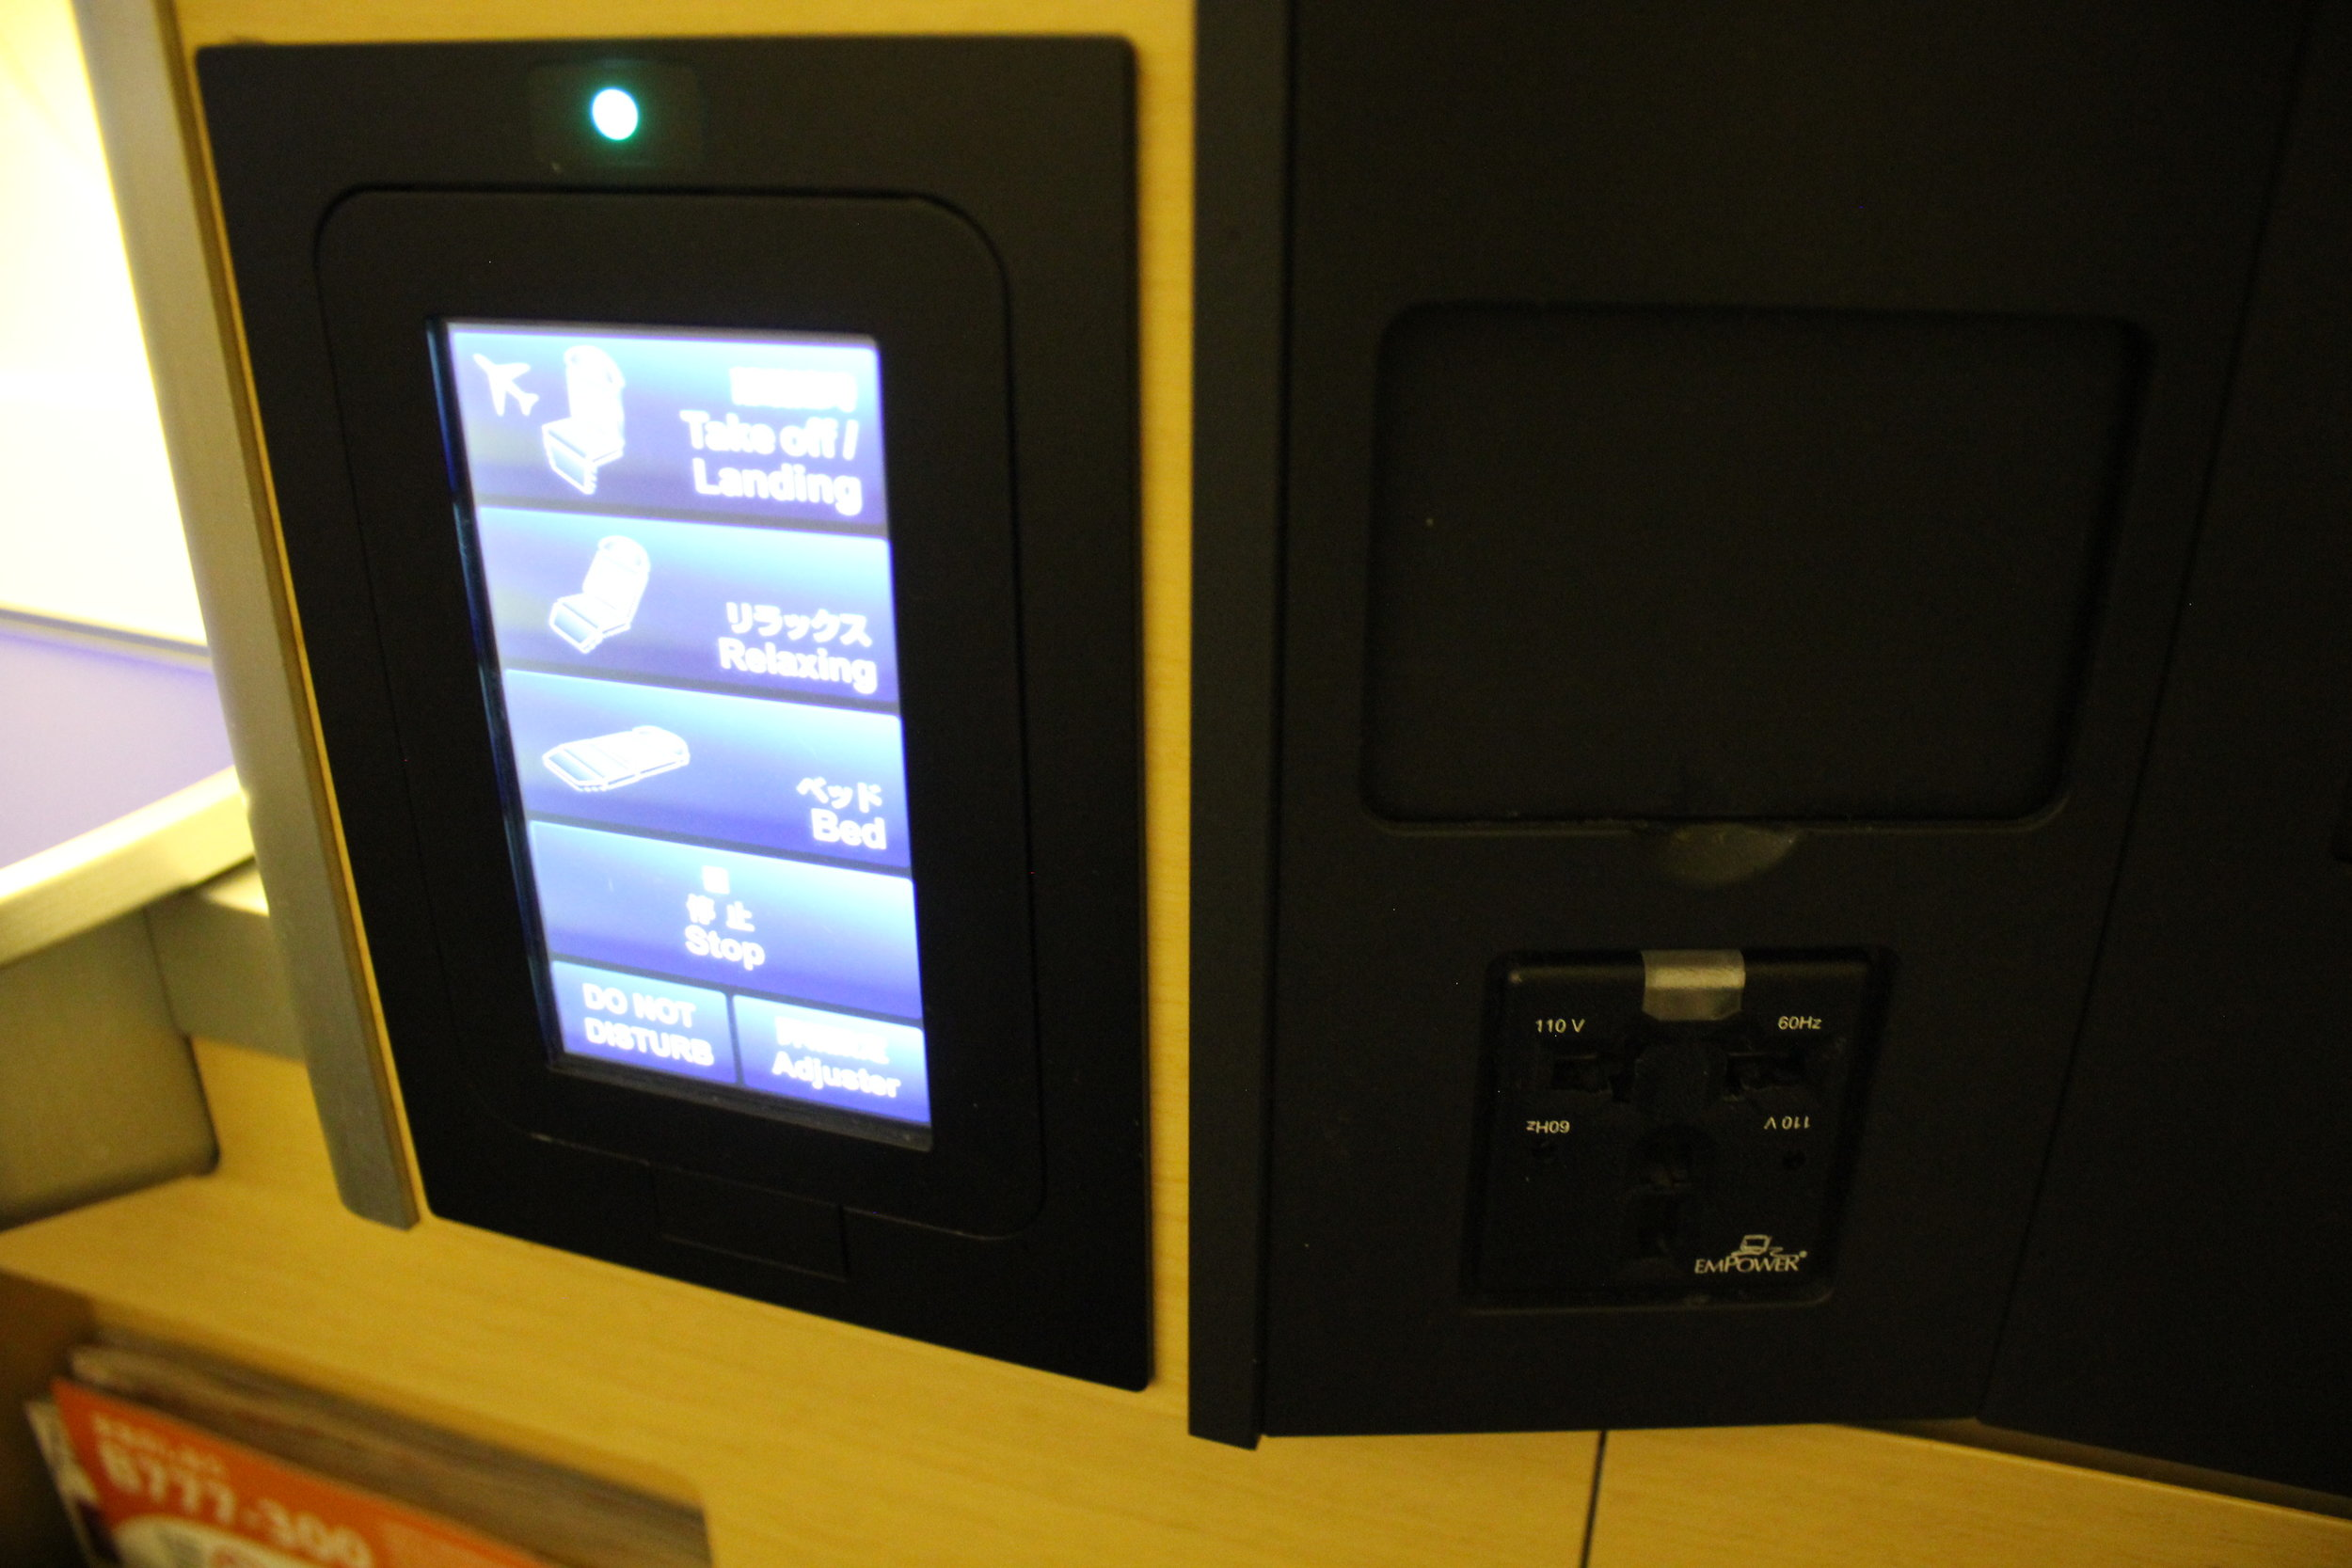 ANA First Class – LCD seat controls